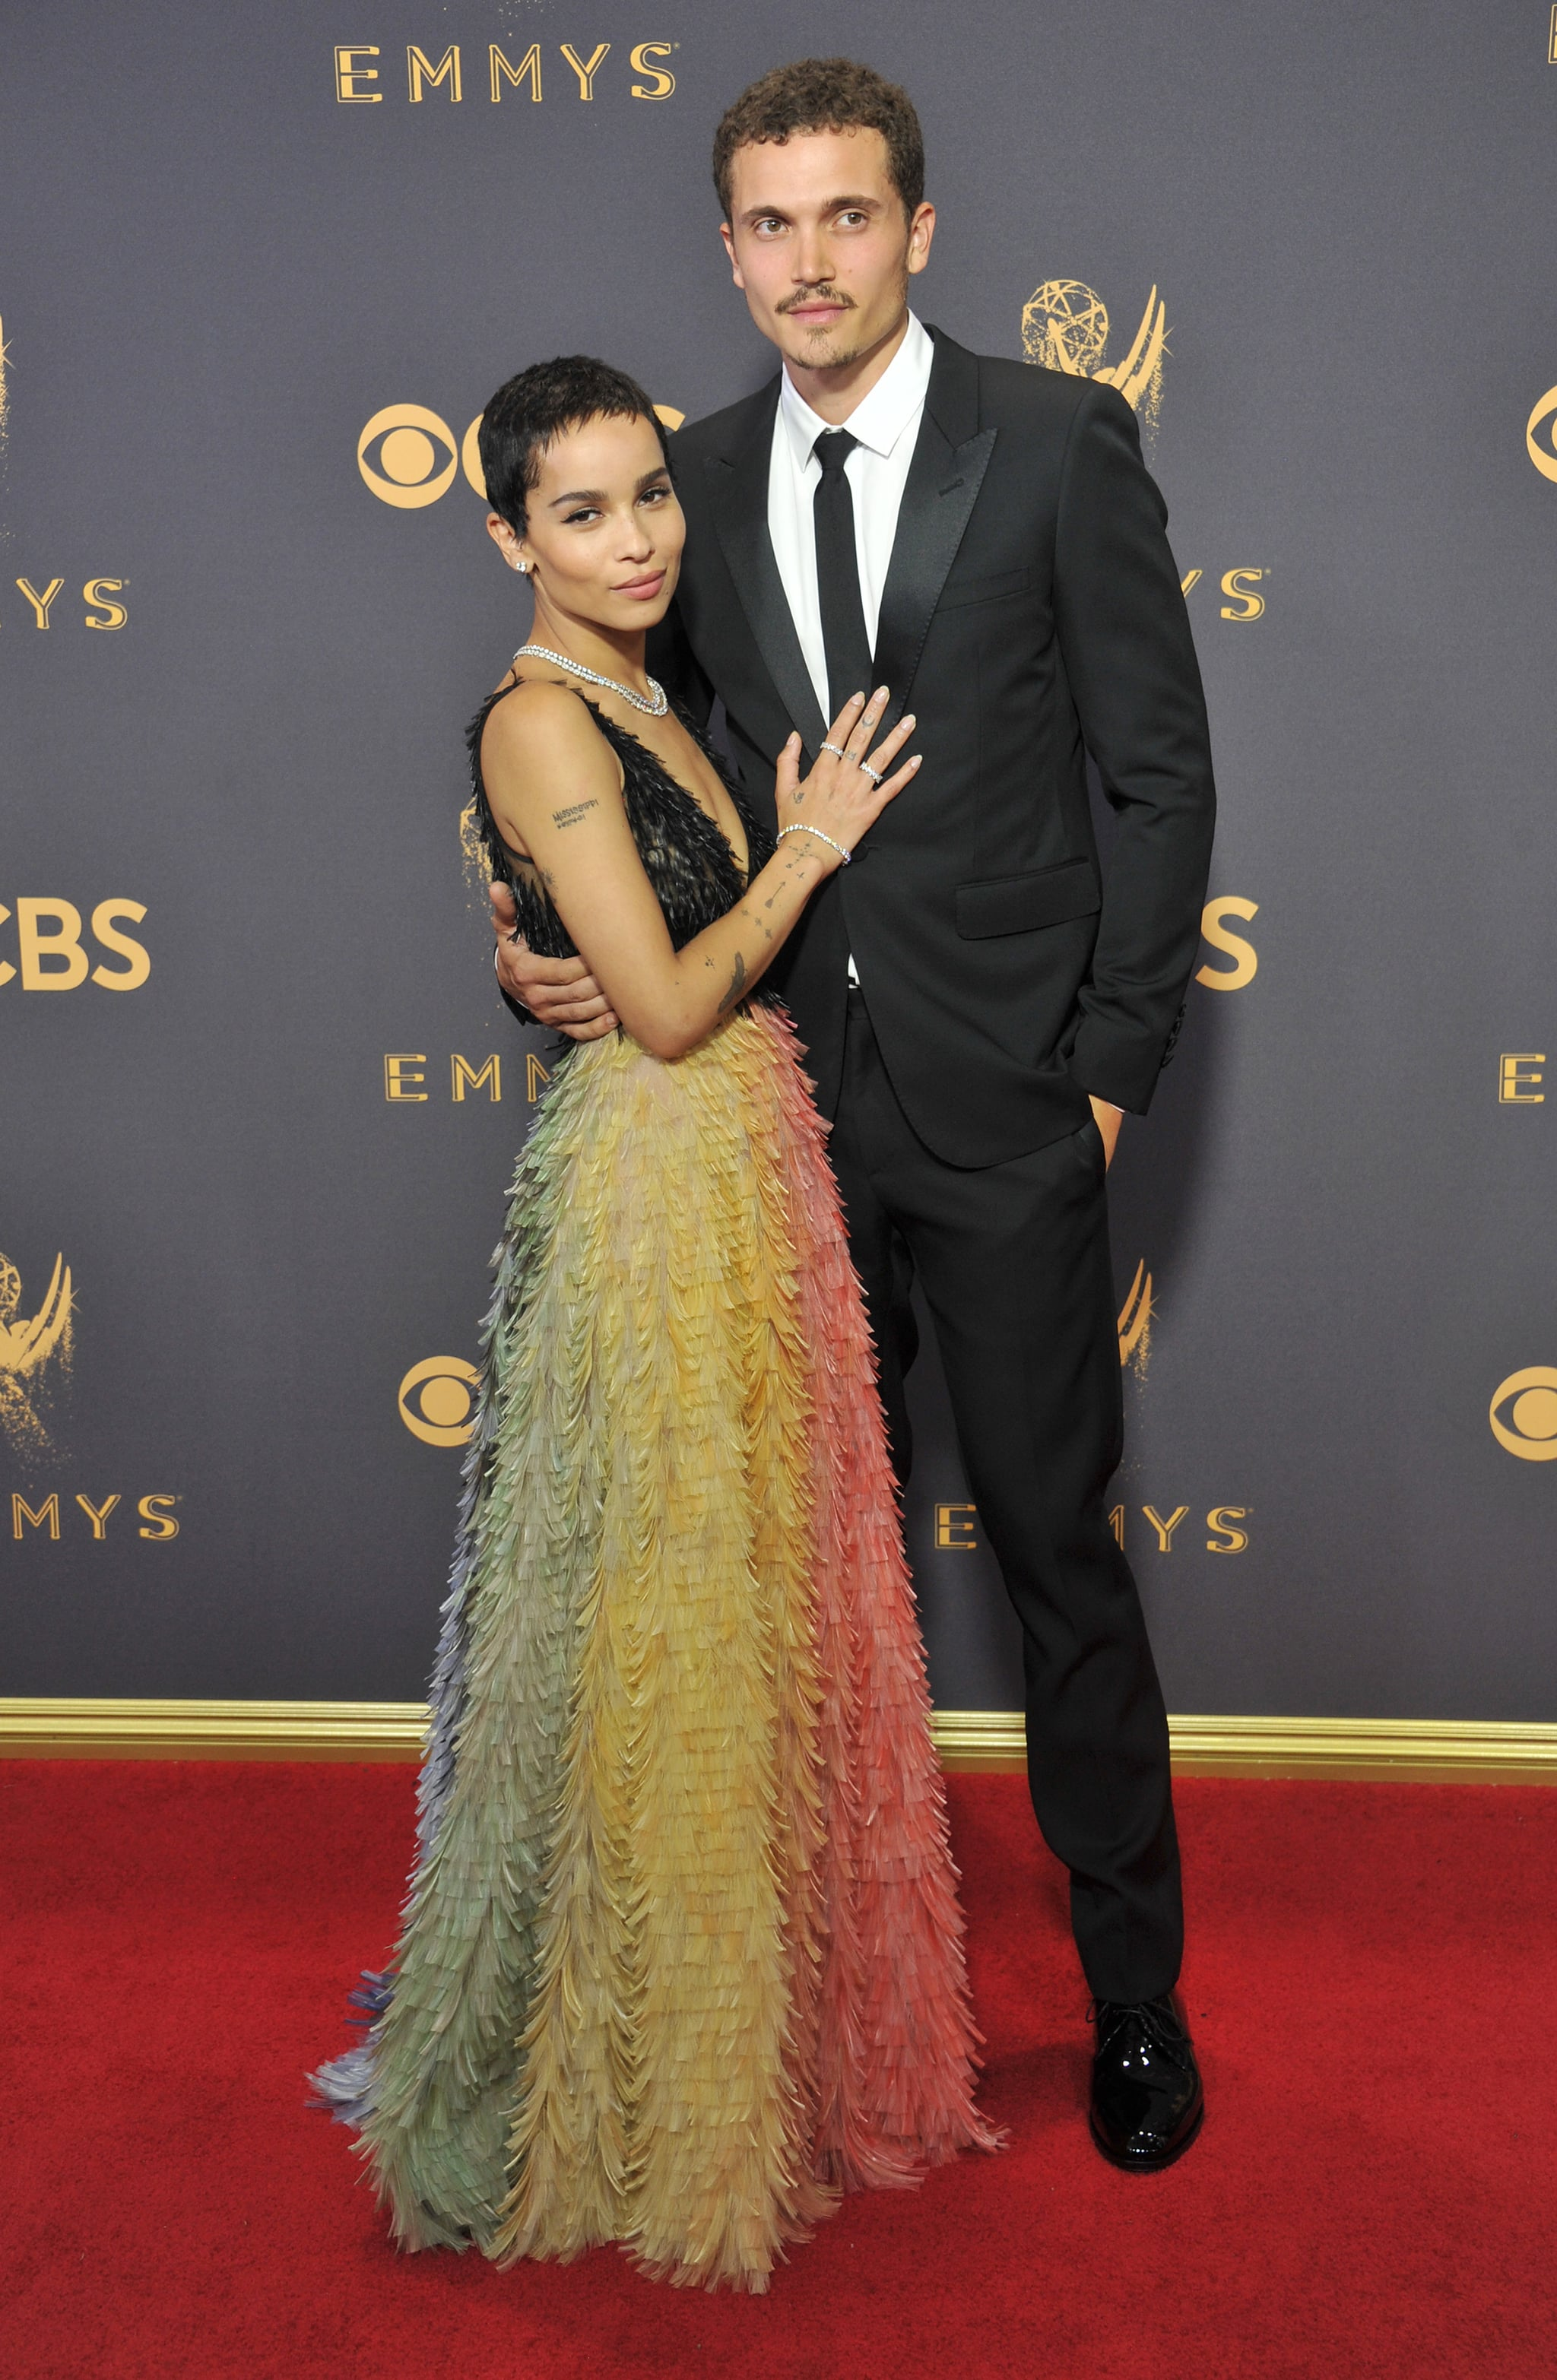 LOS ANGELES, CA - SEPTEMBER 17:  Zoe Kravitz and Karl Glusman arrive at the 69th Annual Primetime Emmy Awards at Microsoft Theater on September 17, 2017 in Los Angeles, California.  (Photo by Gregg DeGuire/Getty Images)